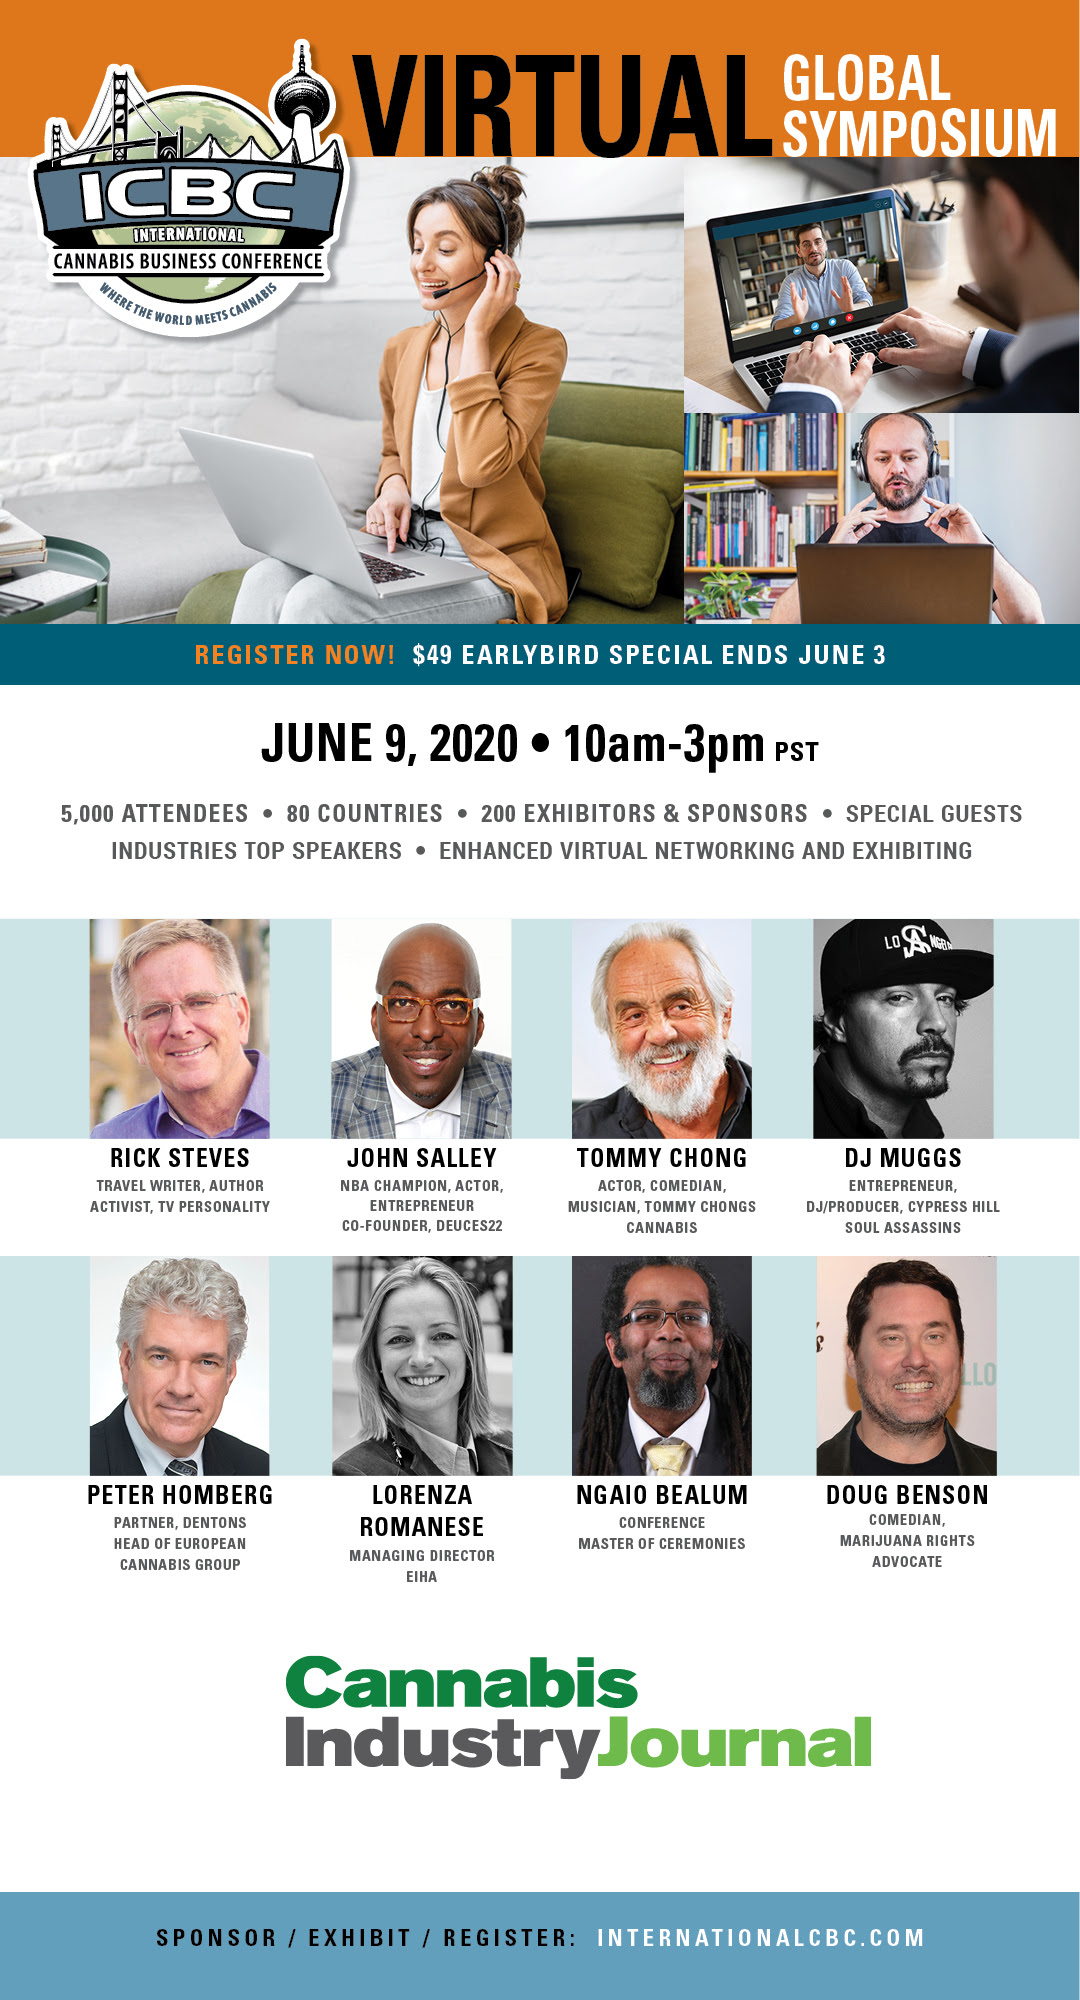 Virtual International Cannabis Business Conference (online) June 9 2020